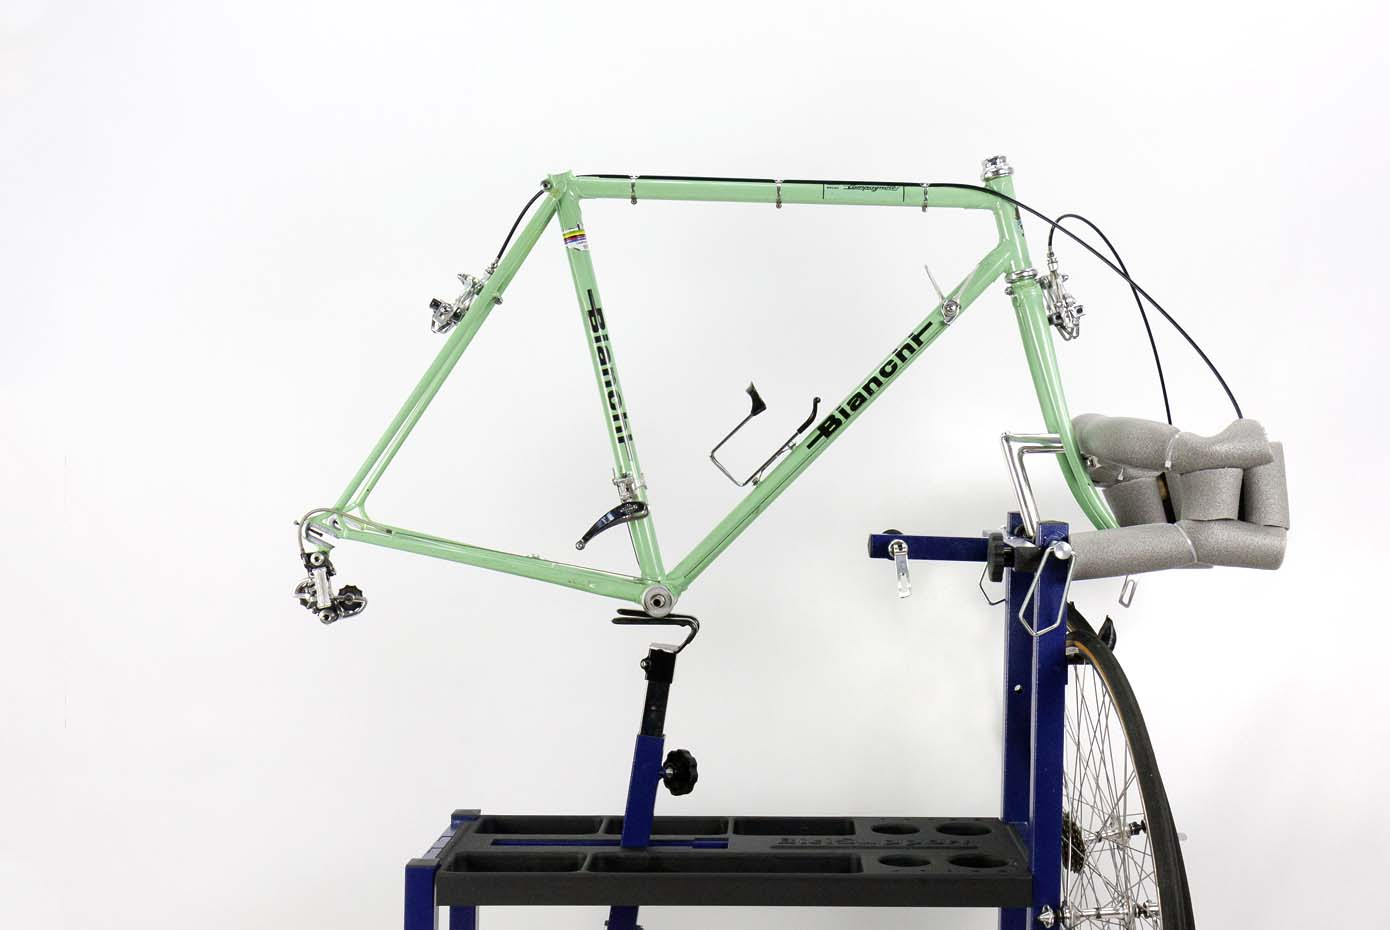 Steel Vintage Bikes Worldwide and Secure Bicycle Shipping